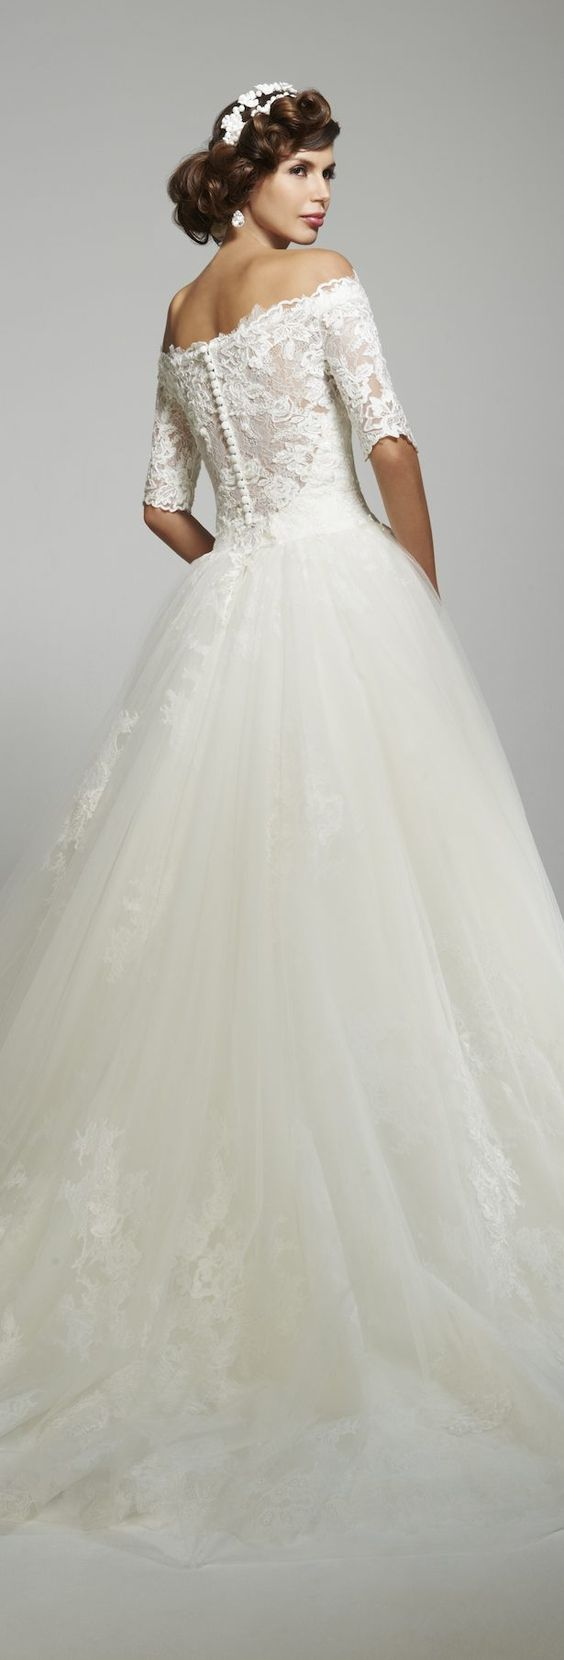 Sophisticated lace off-the-shoulder ballgown wedding dress; Featured Dress: Matthew Christopher